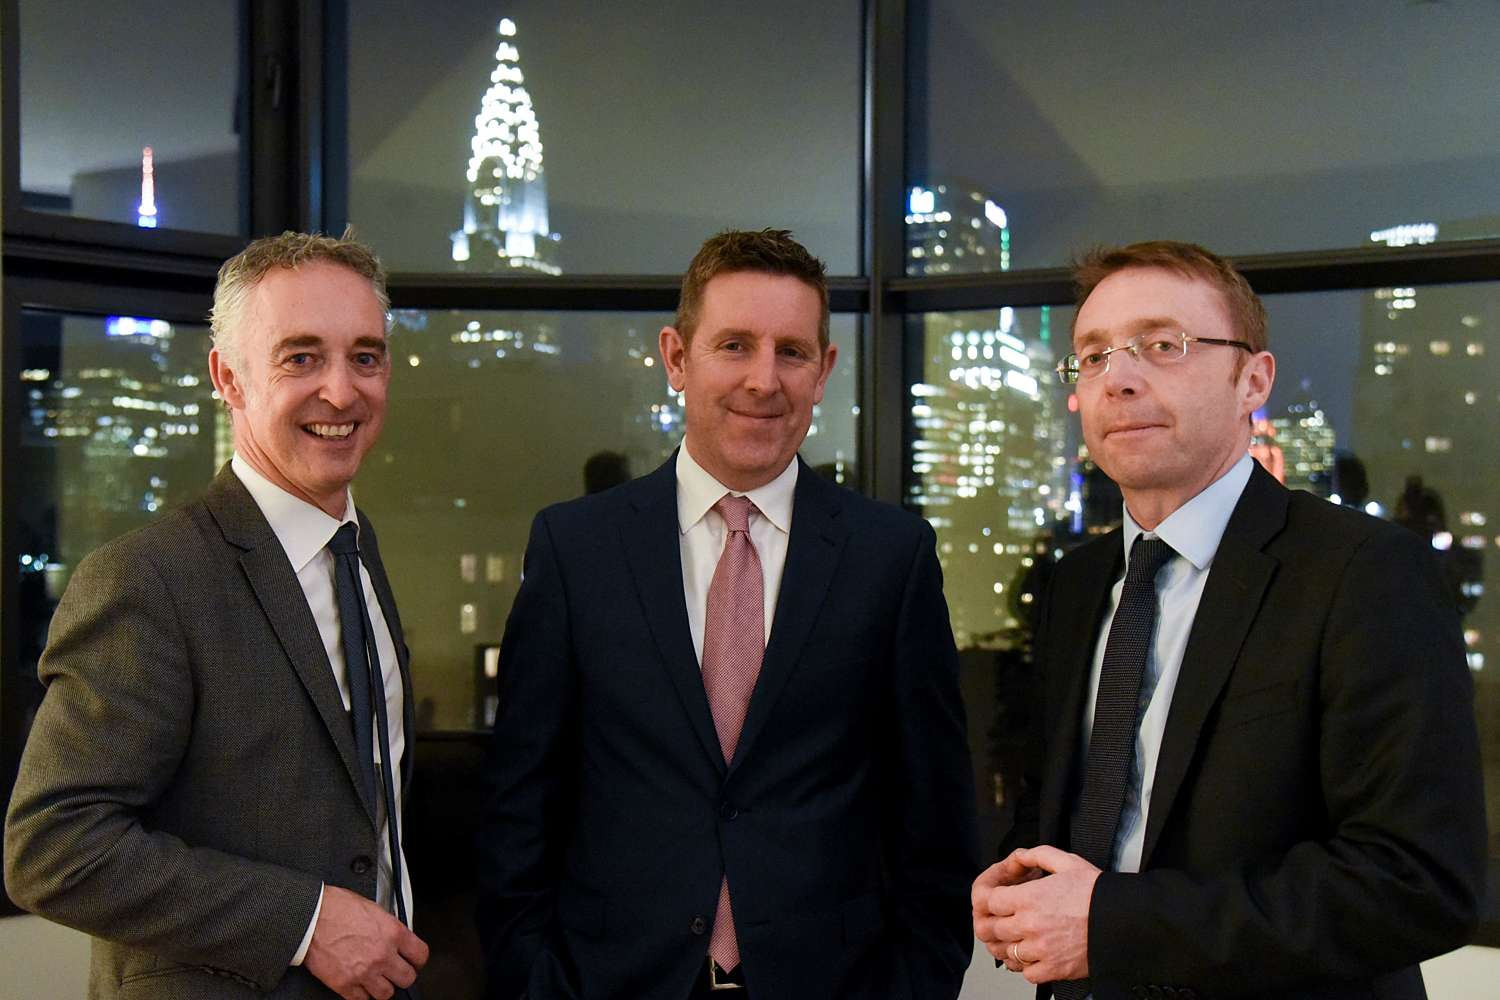 HBAN announce partnership with New York based Digital Irish Angels